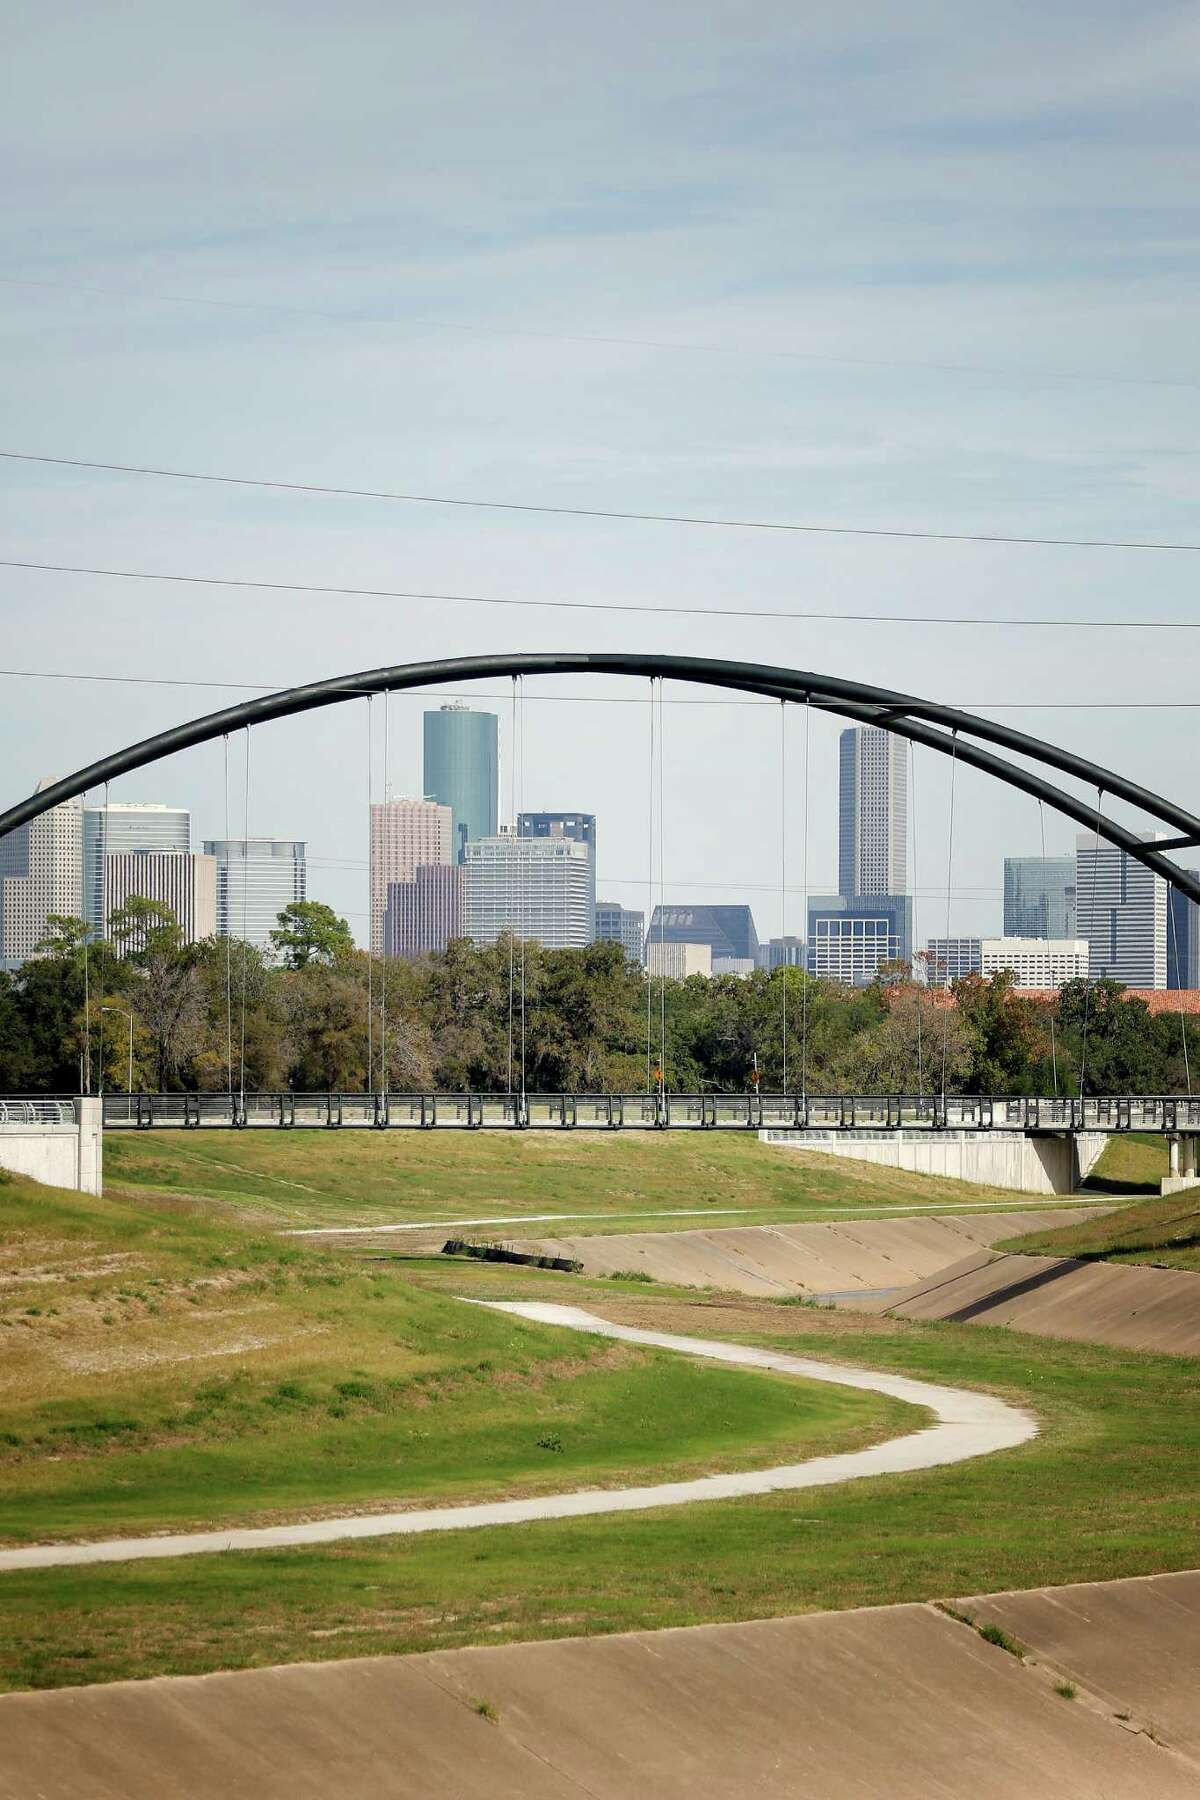 The Bill Coats Bridge, built by the Hermann Park Conservancy to make a key bicycle crossing, was completed in 2012.